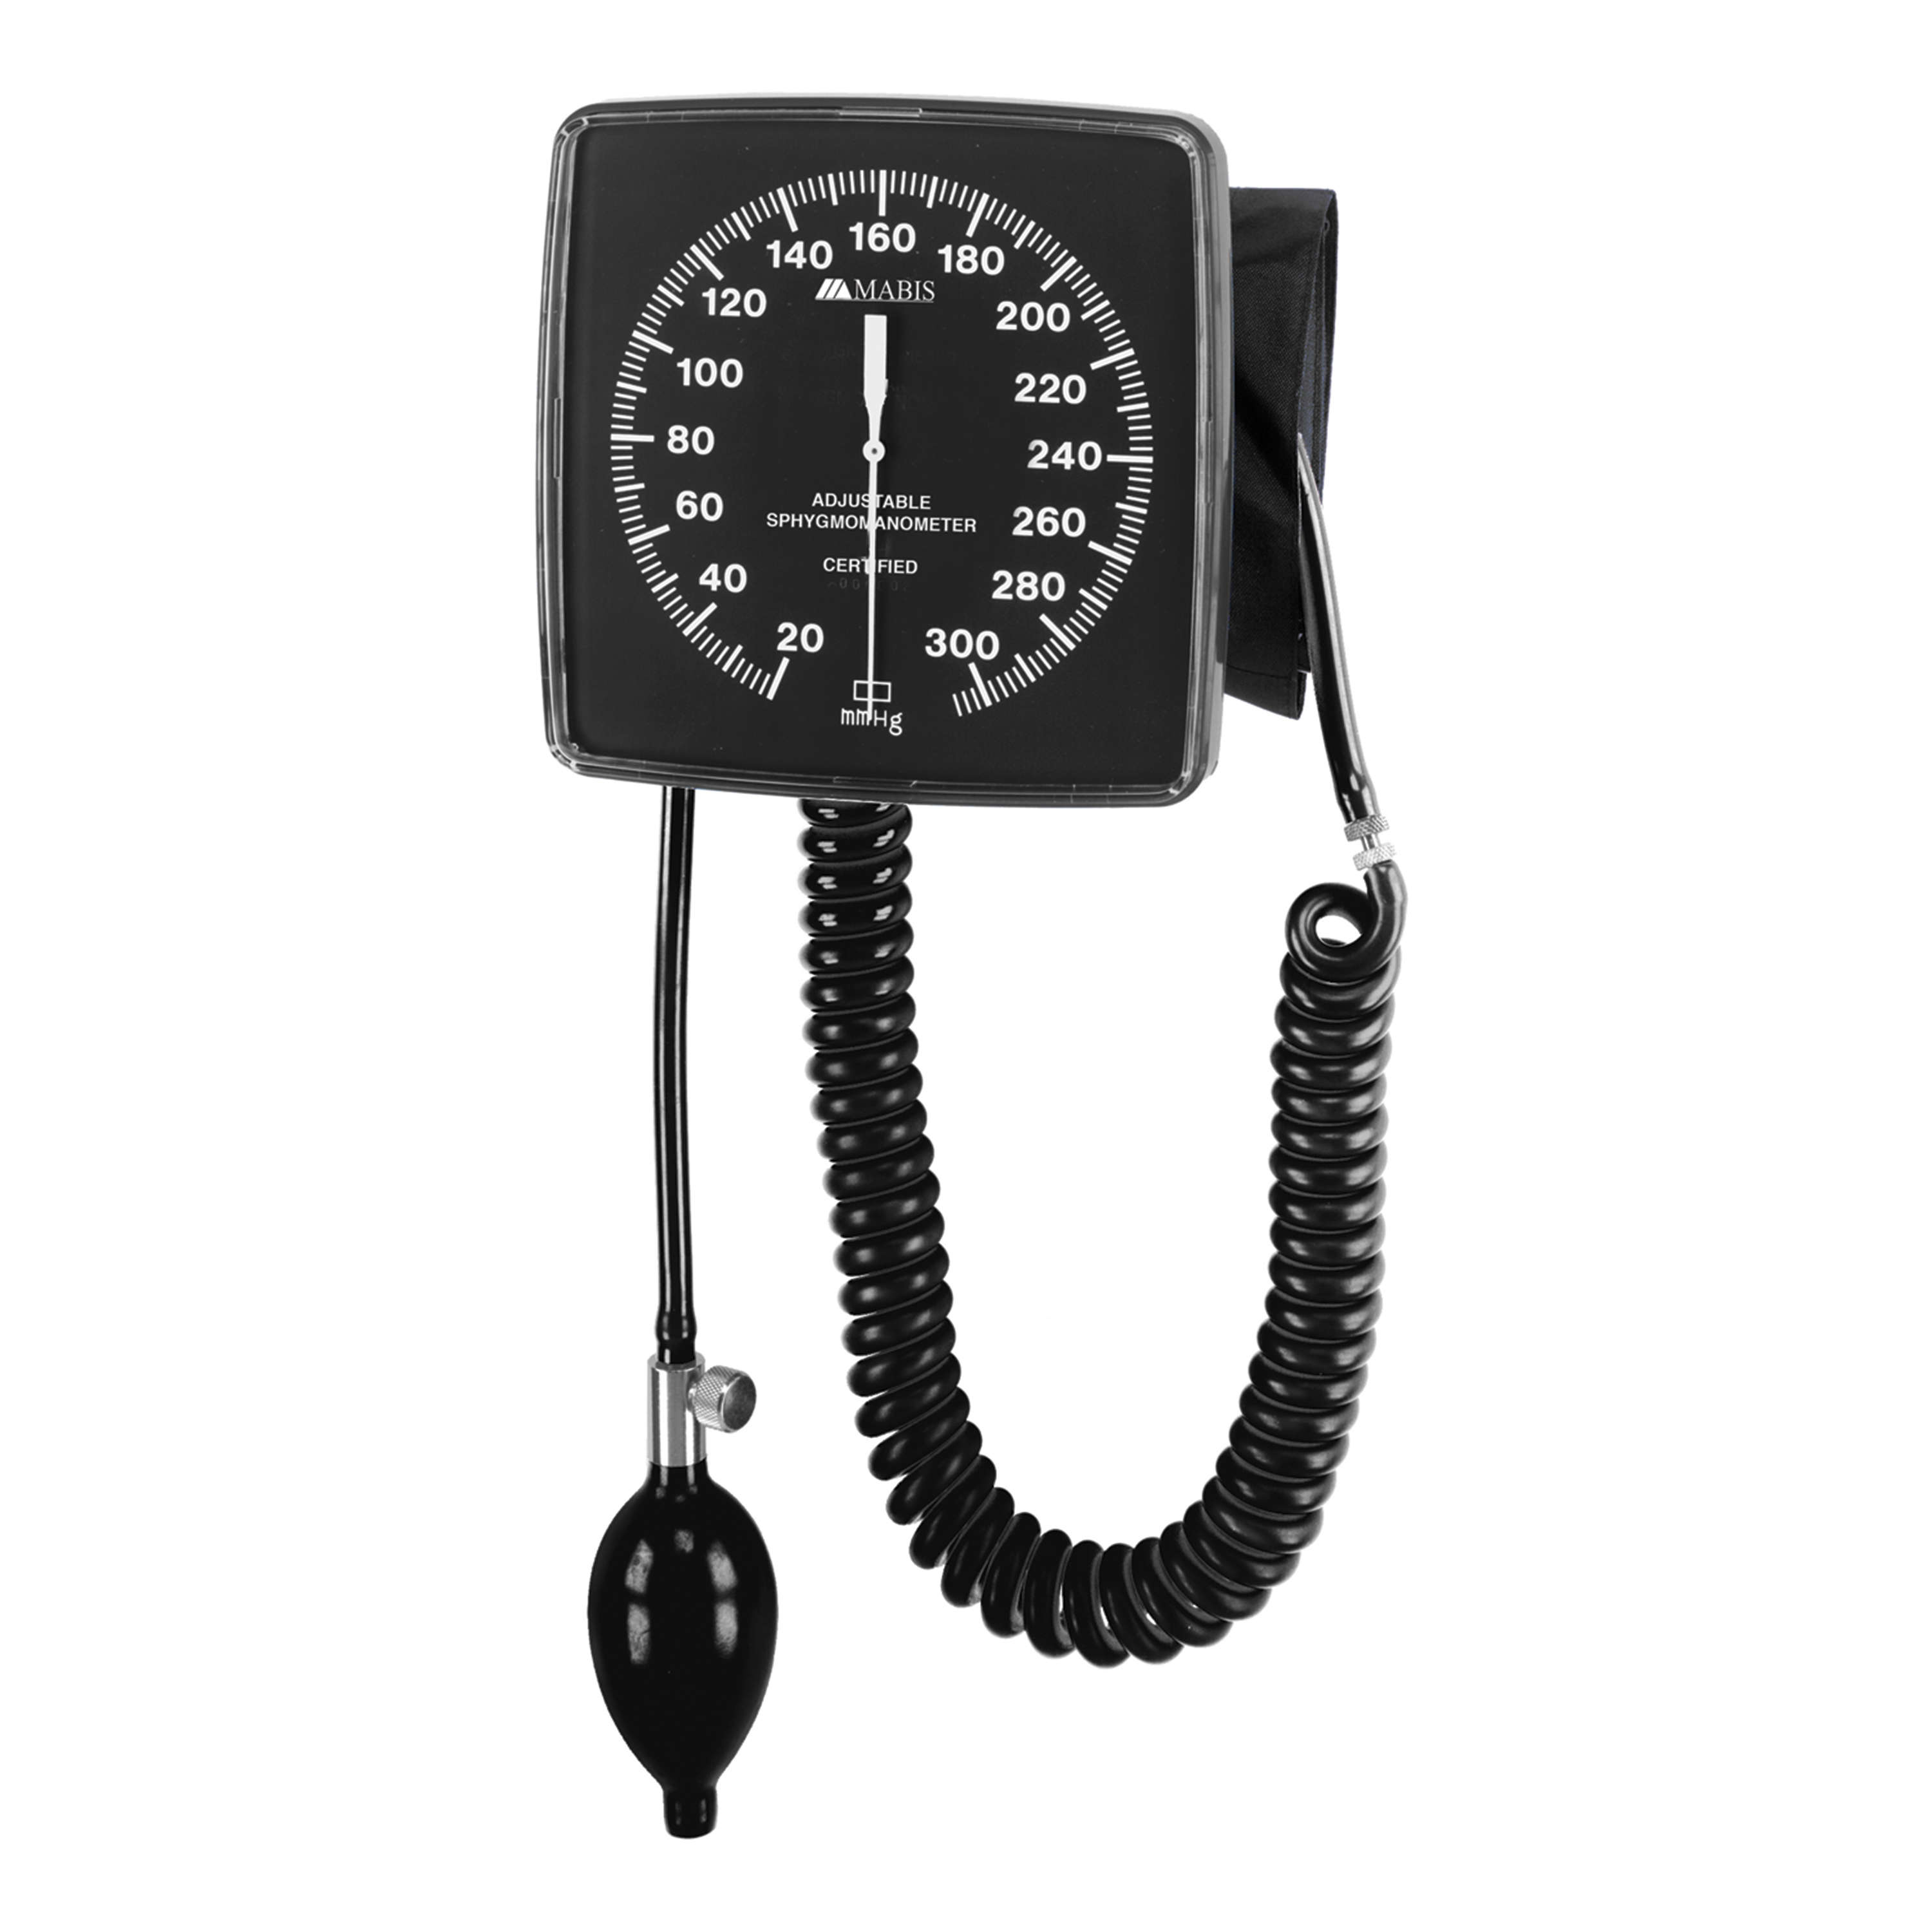 MABIS Legacy Wall-Mounted Clocks Aneroid Sphygmomanometer, Black